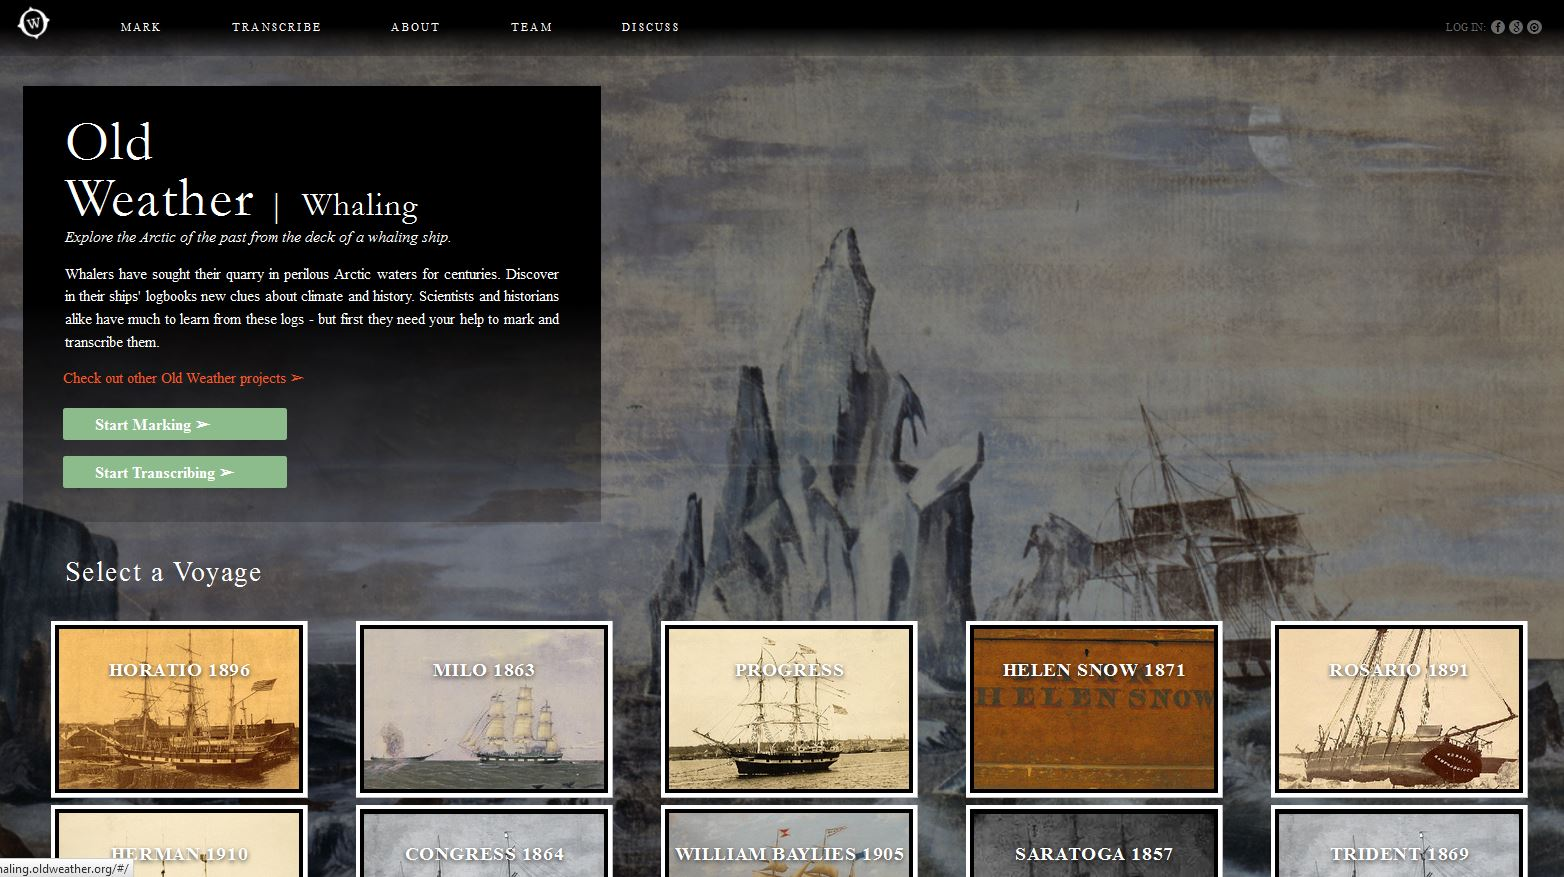 OldWeather.org invites citizen scientists to mark and transcribe ships' logbooks.